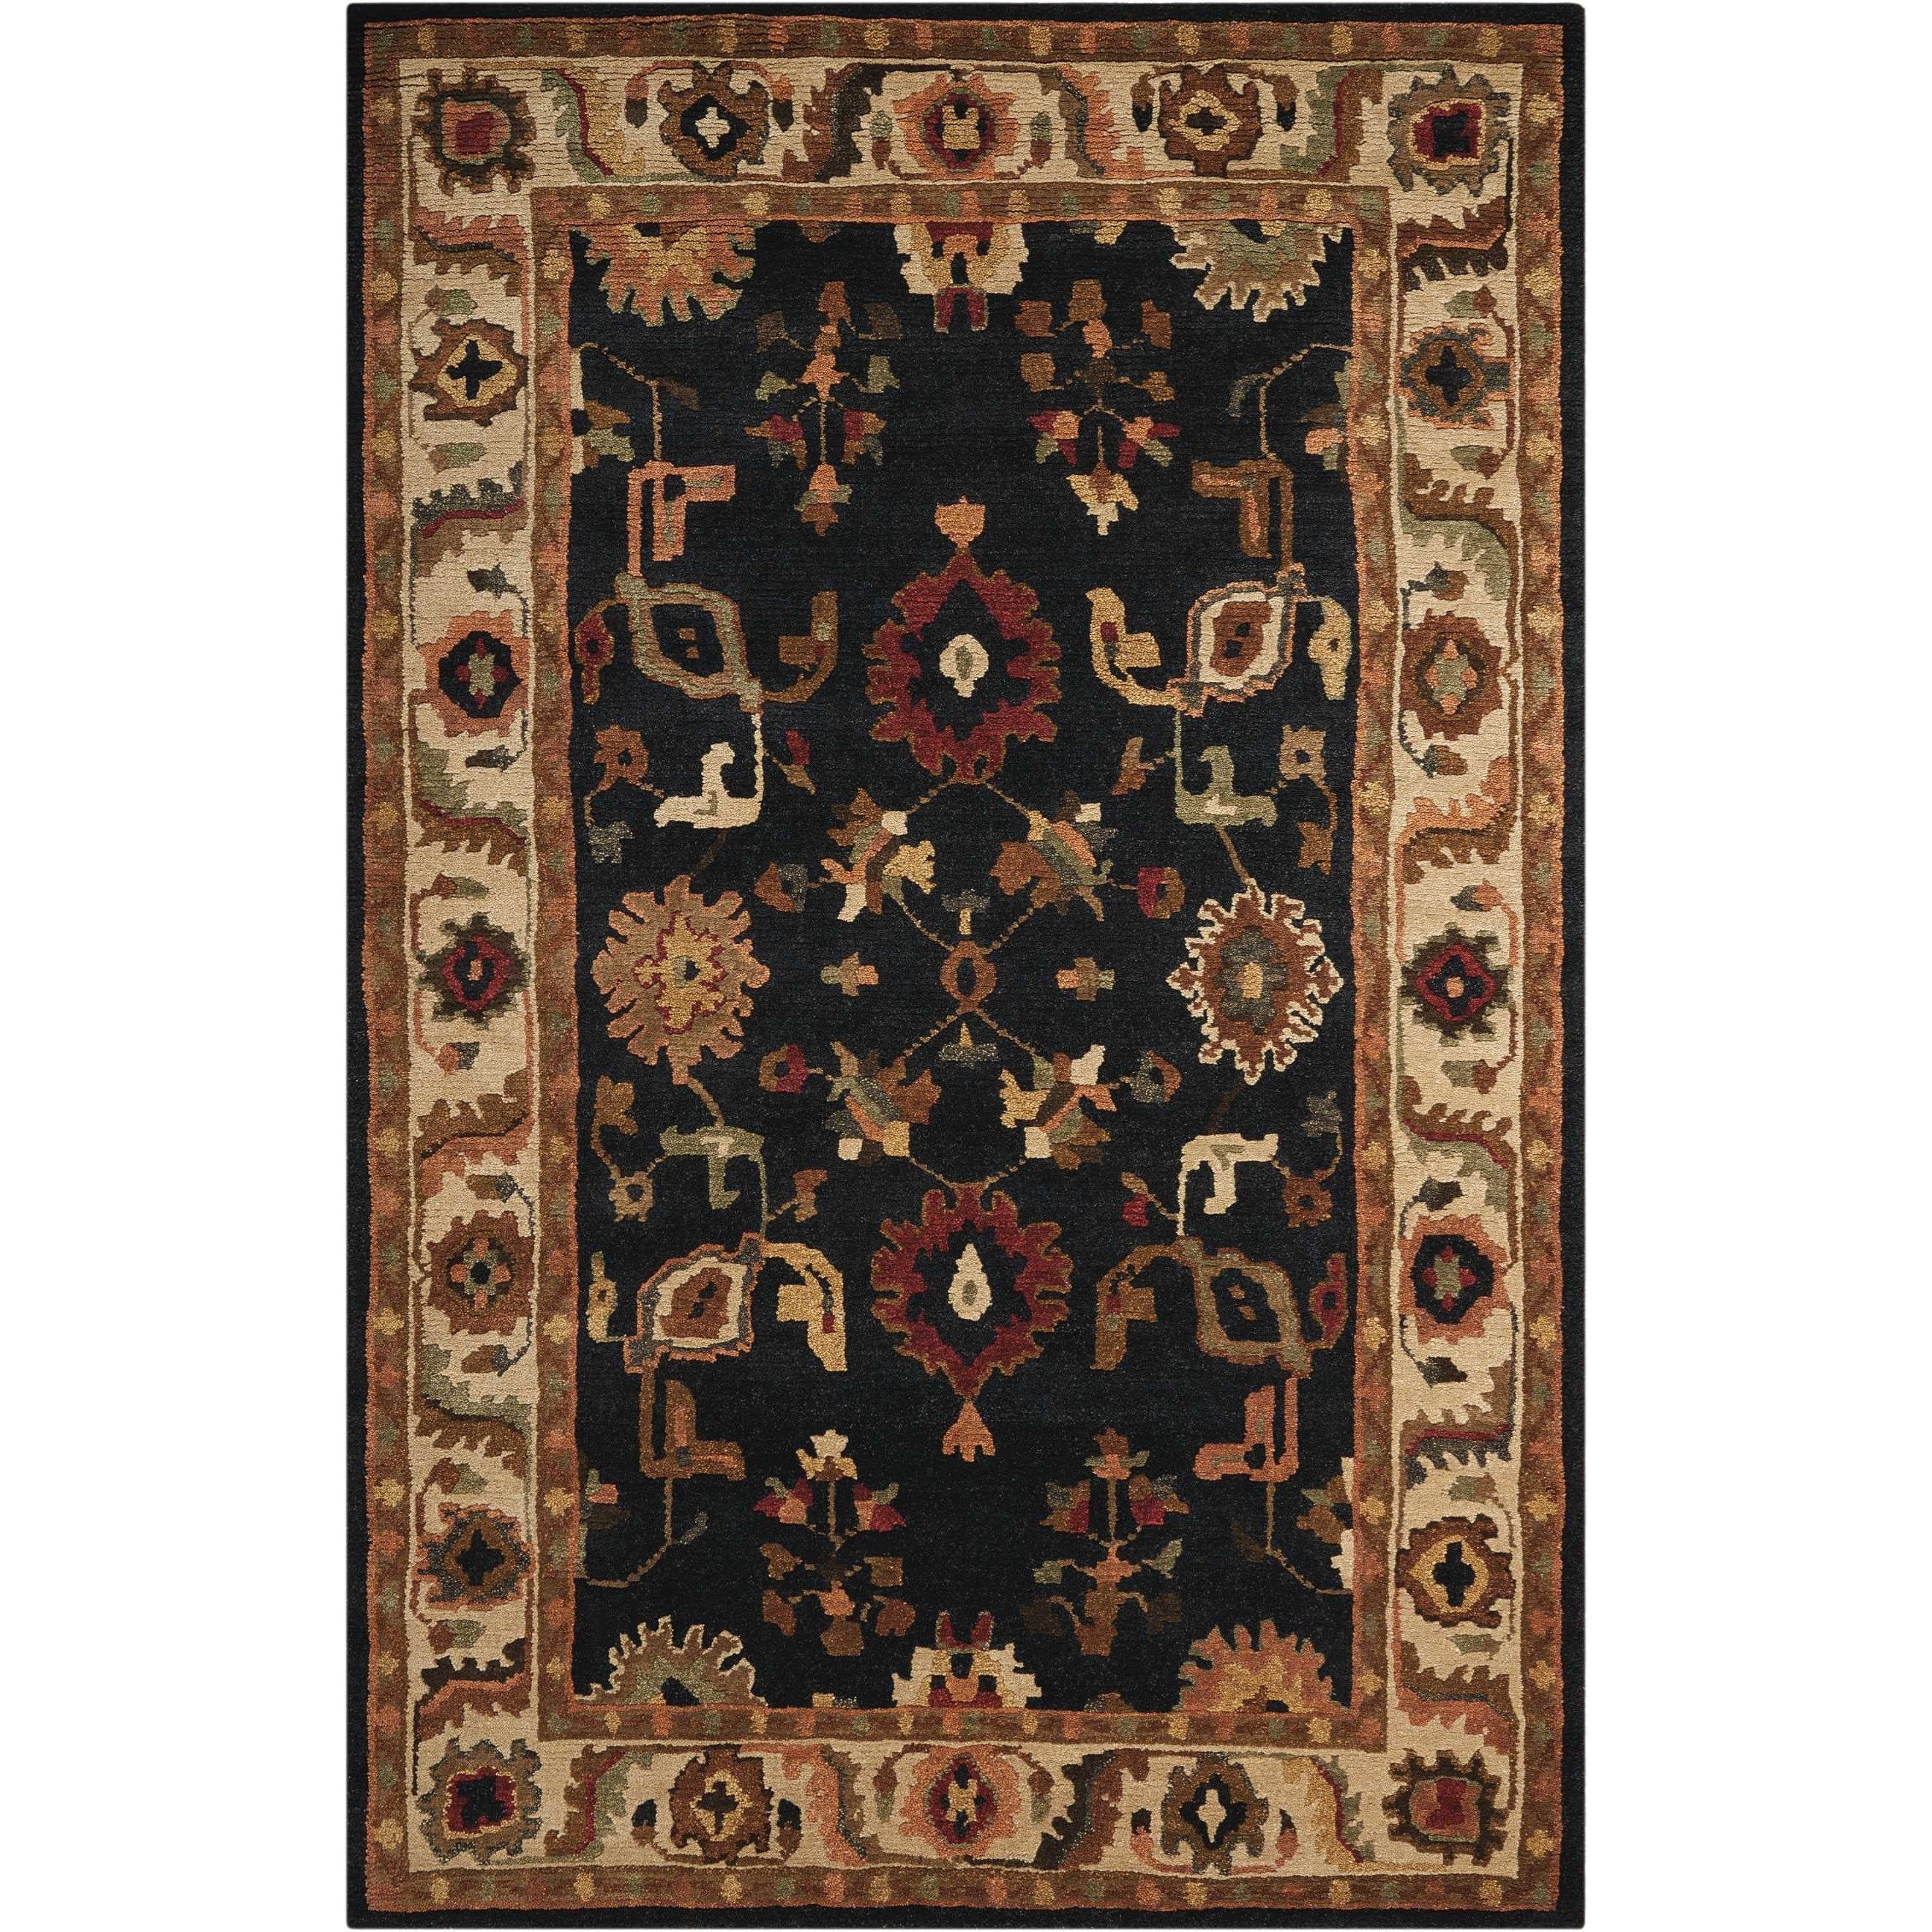 "Tahoe 7'9"" x 9'9"" Black Rectangle Rug by Nourison at Home Collections Furniture"